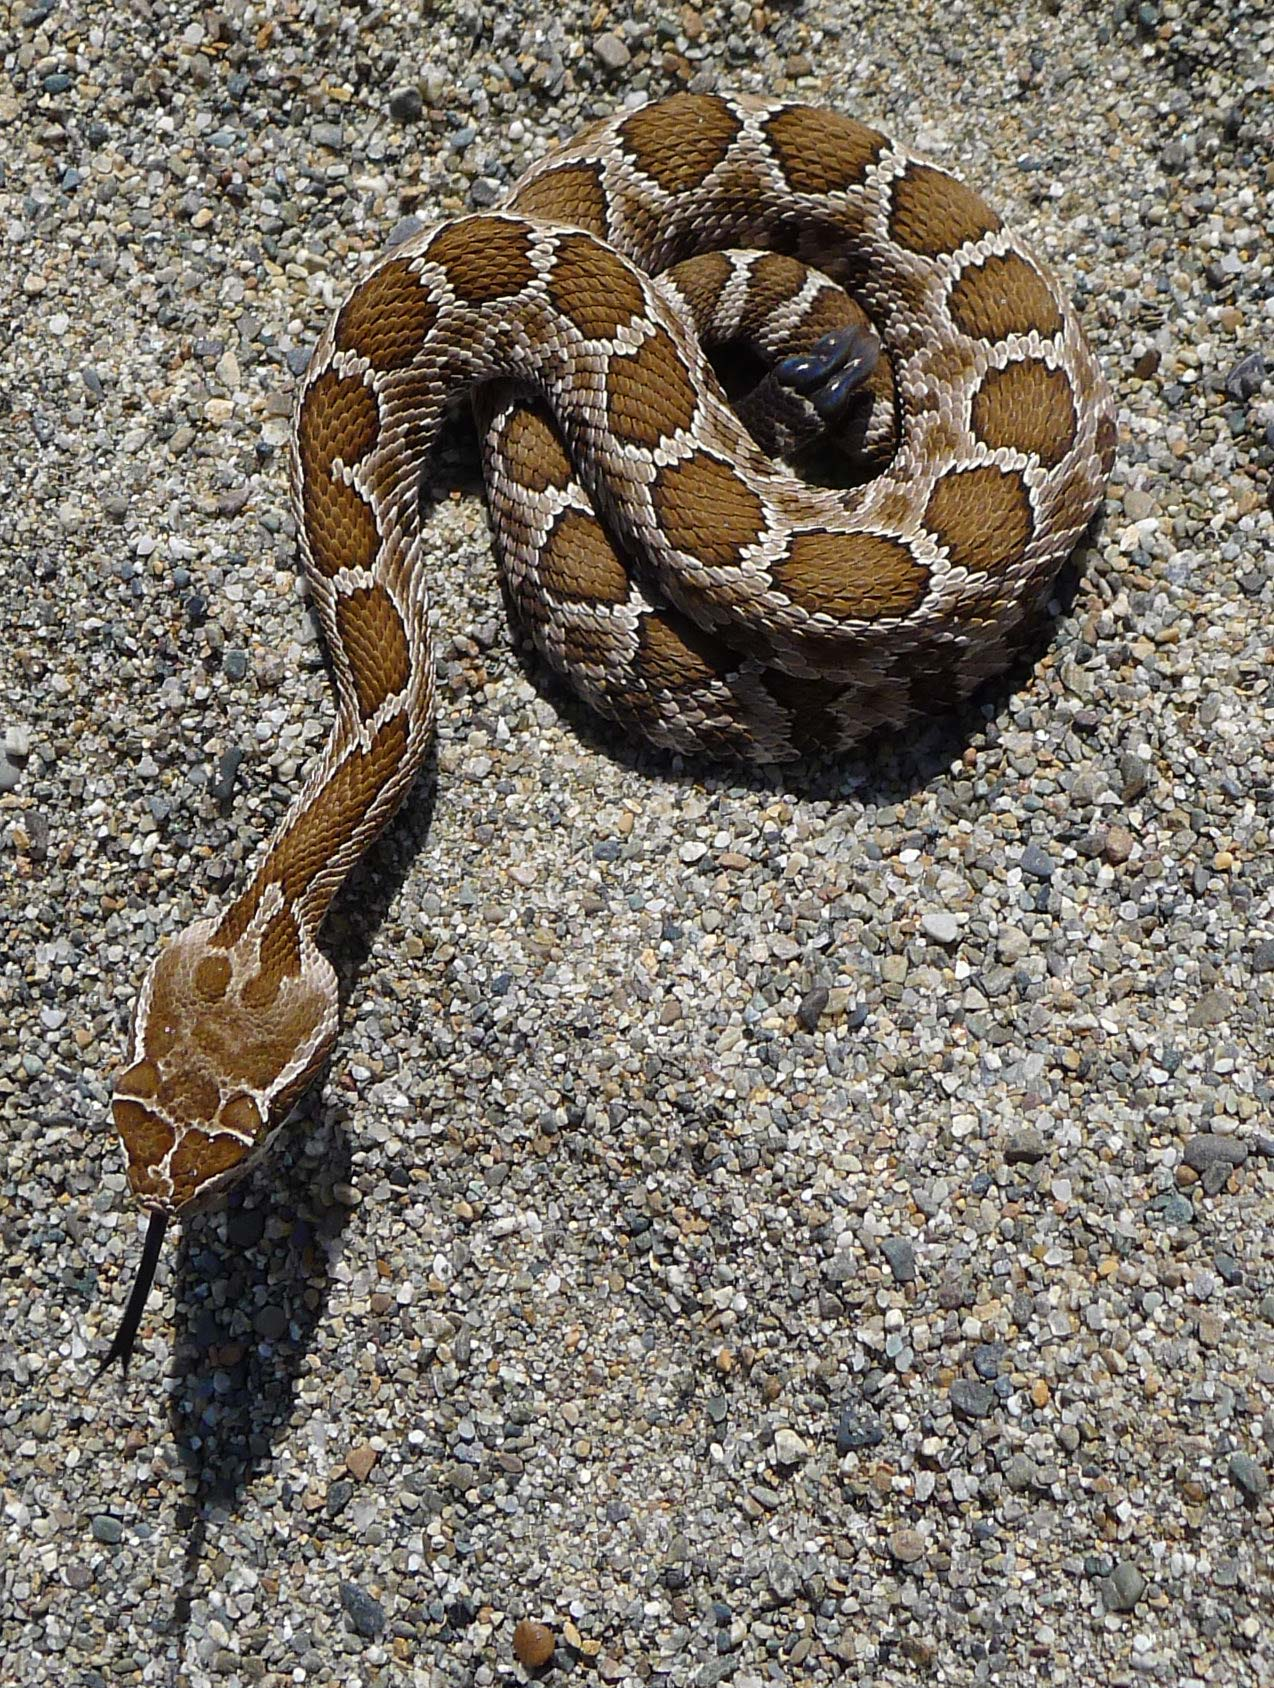 Looks like a rattlesnake without rattle